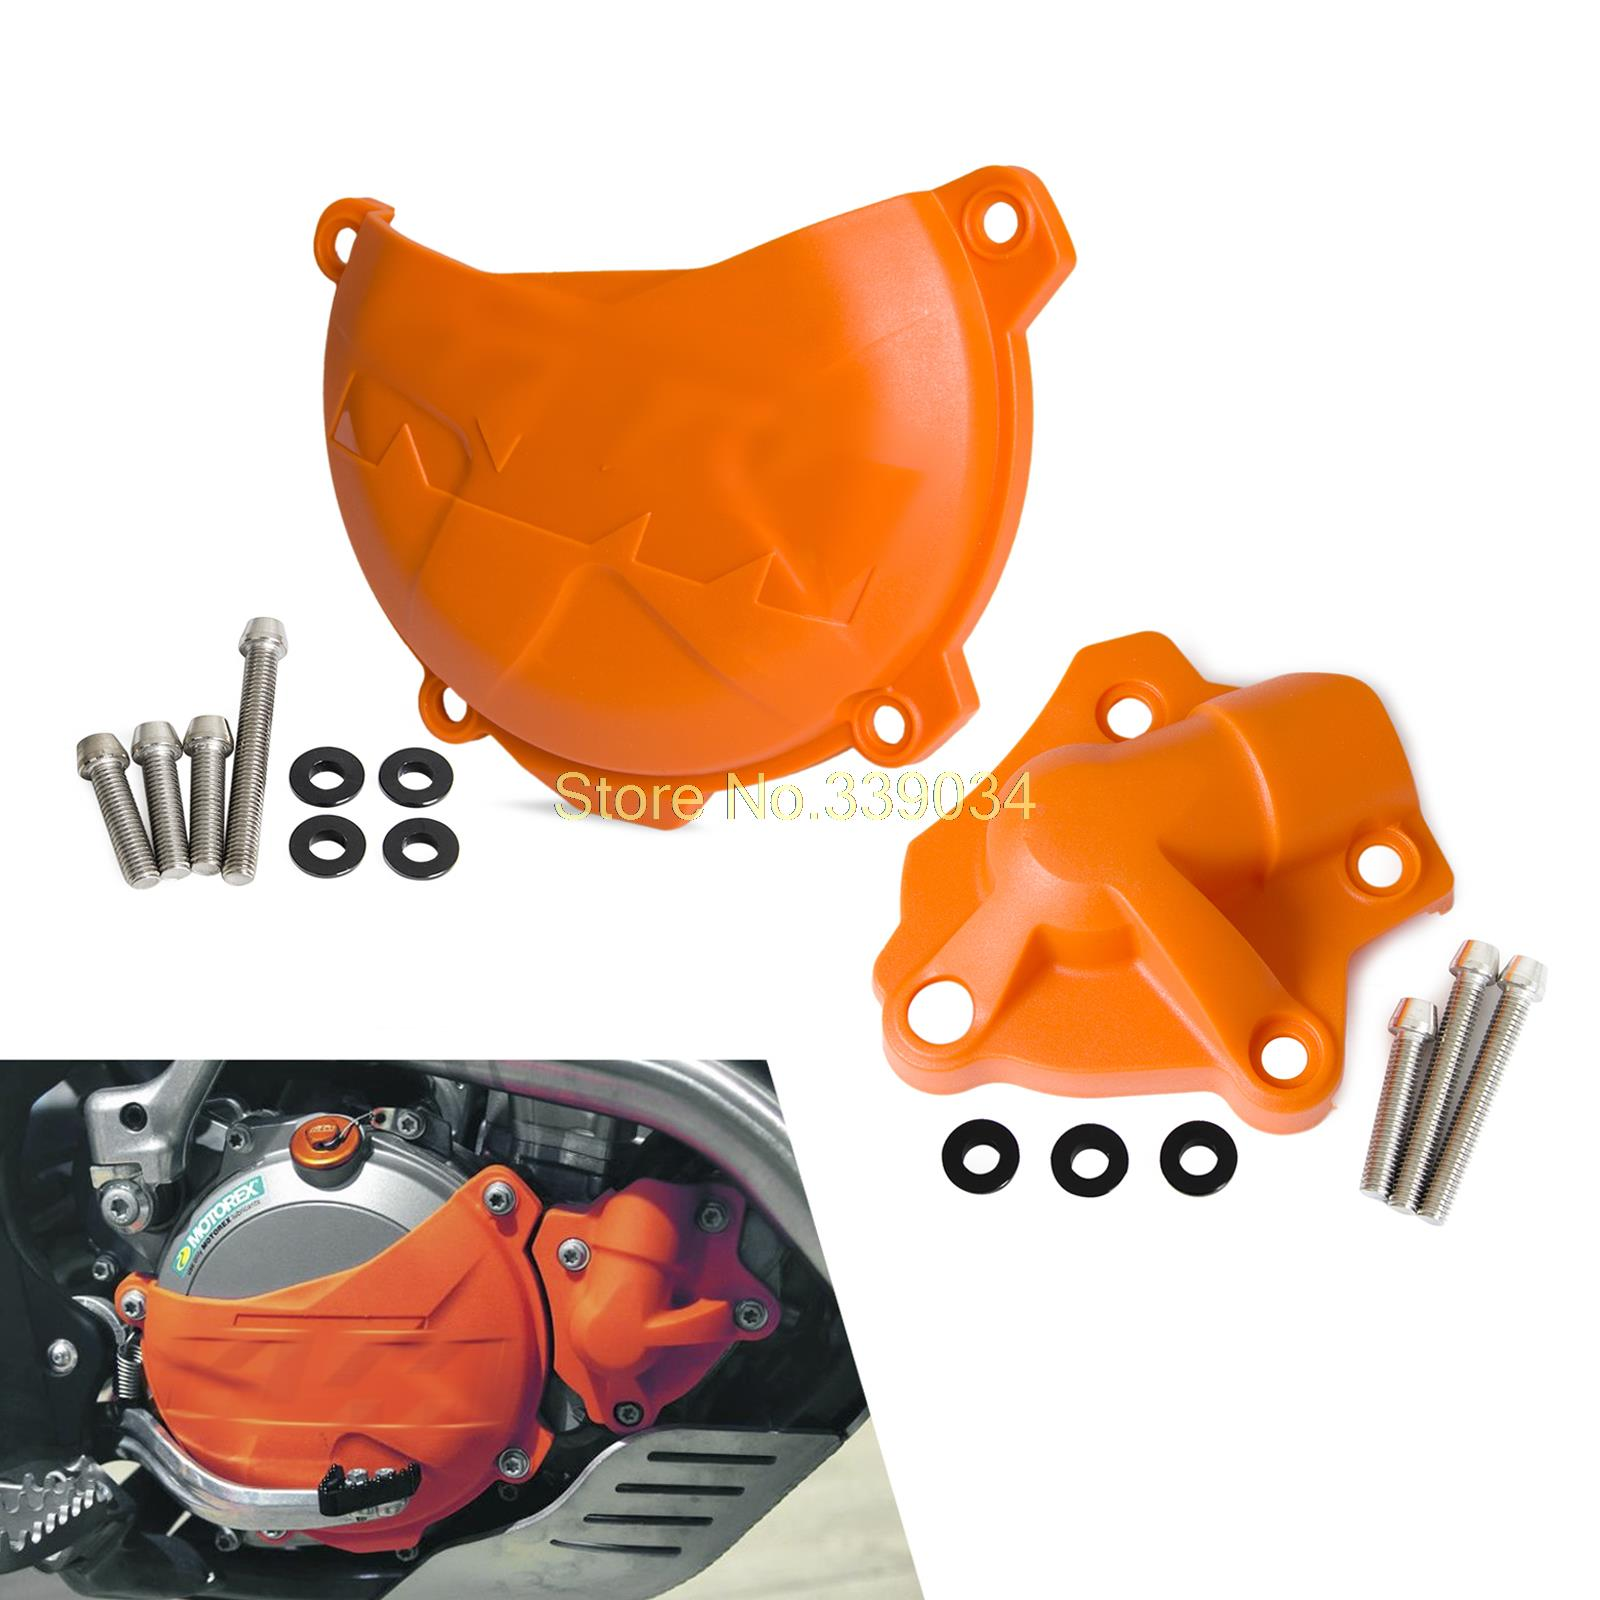 ФОТО Clutch Cover Protection Water Pump Protector for KTM 350 SX F 2011